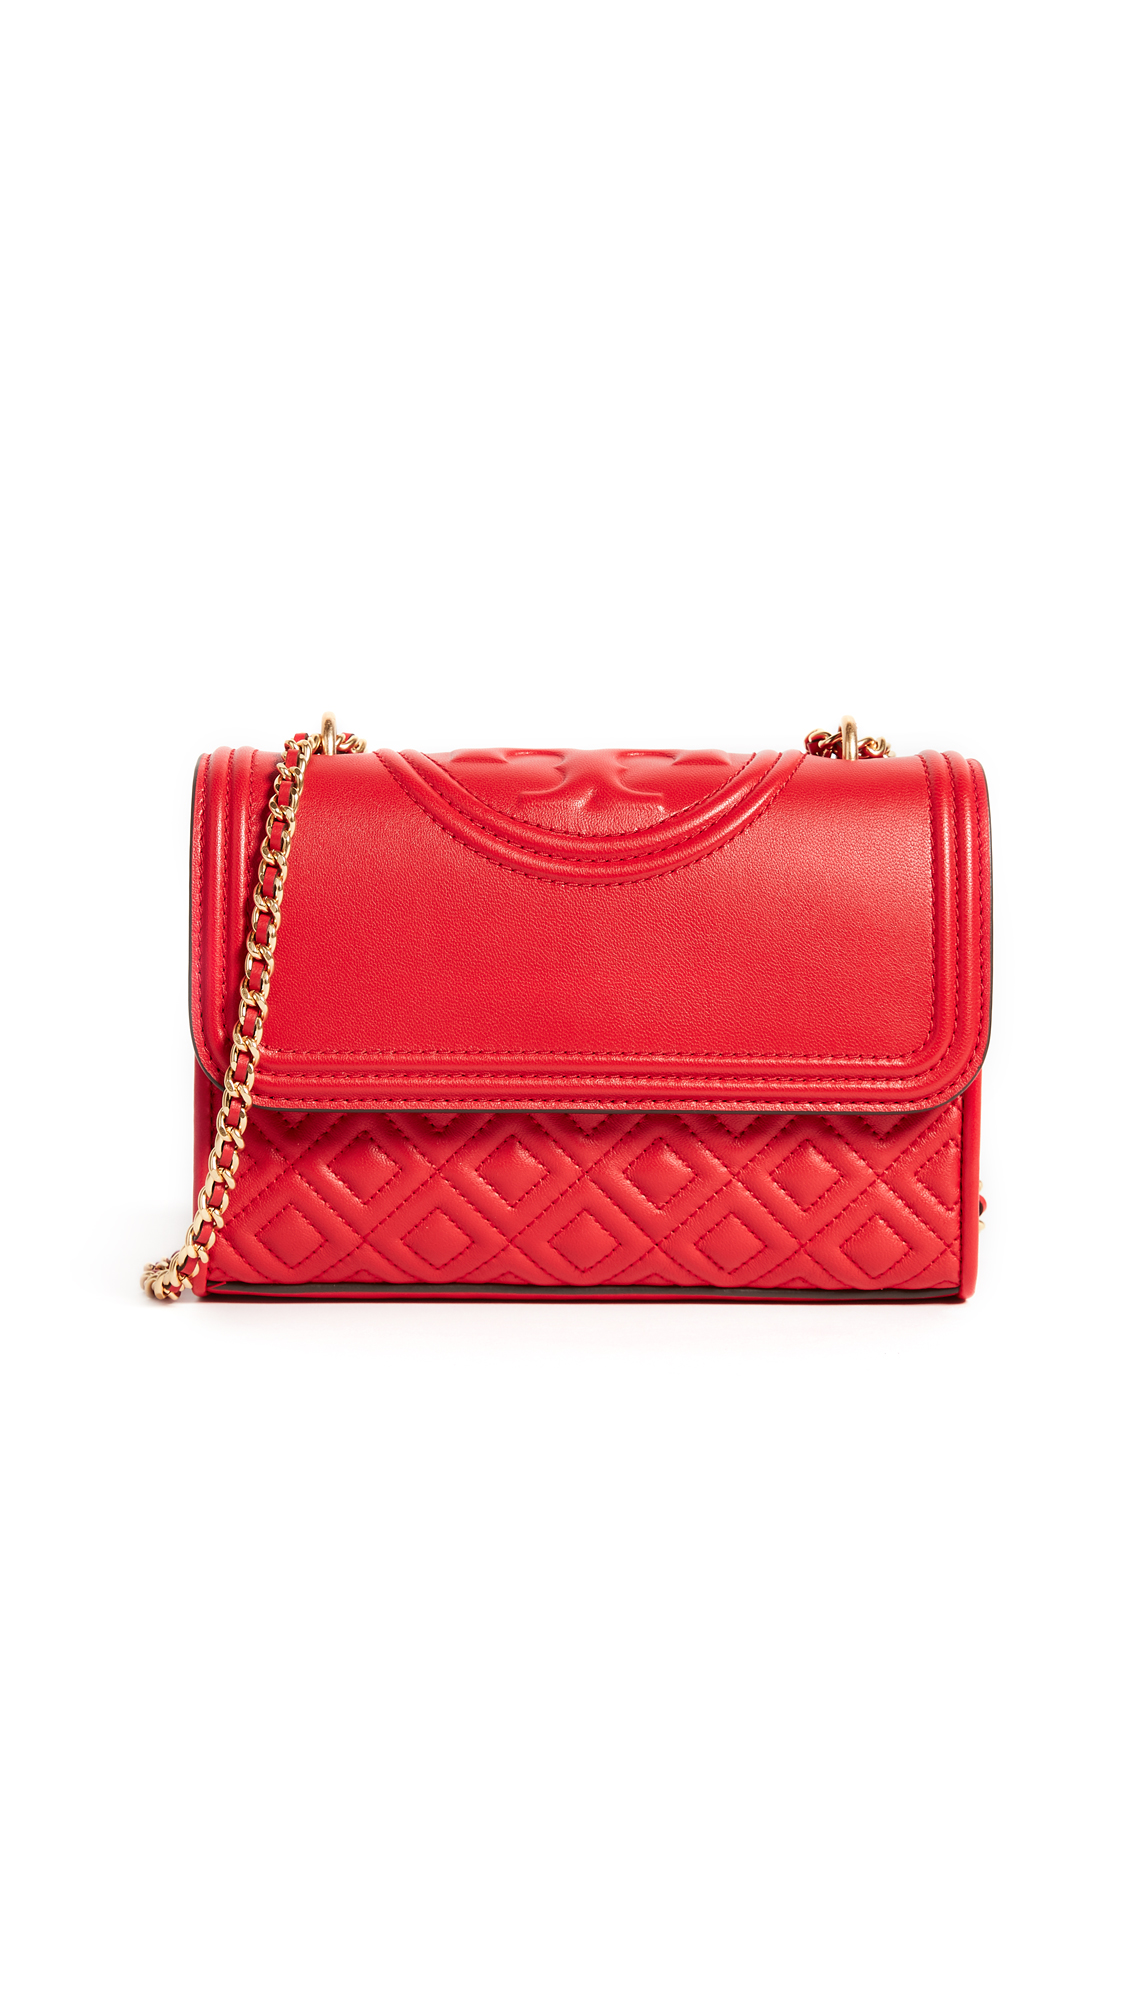 Tory Burch Fleming Small Convertible Shoulder Bag - Exotic Red